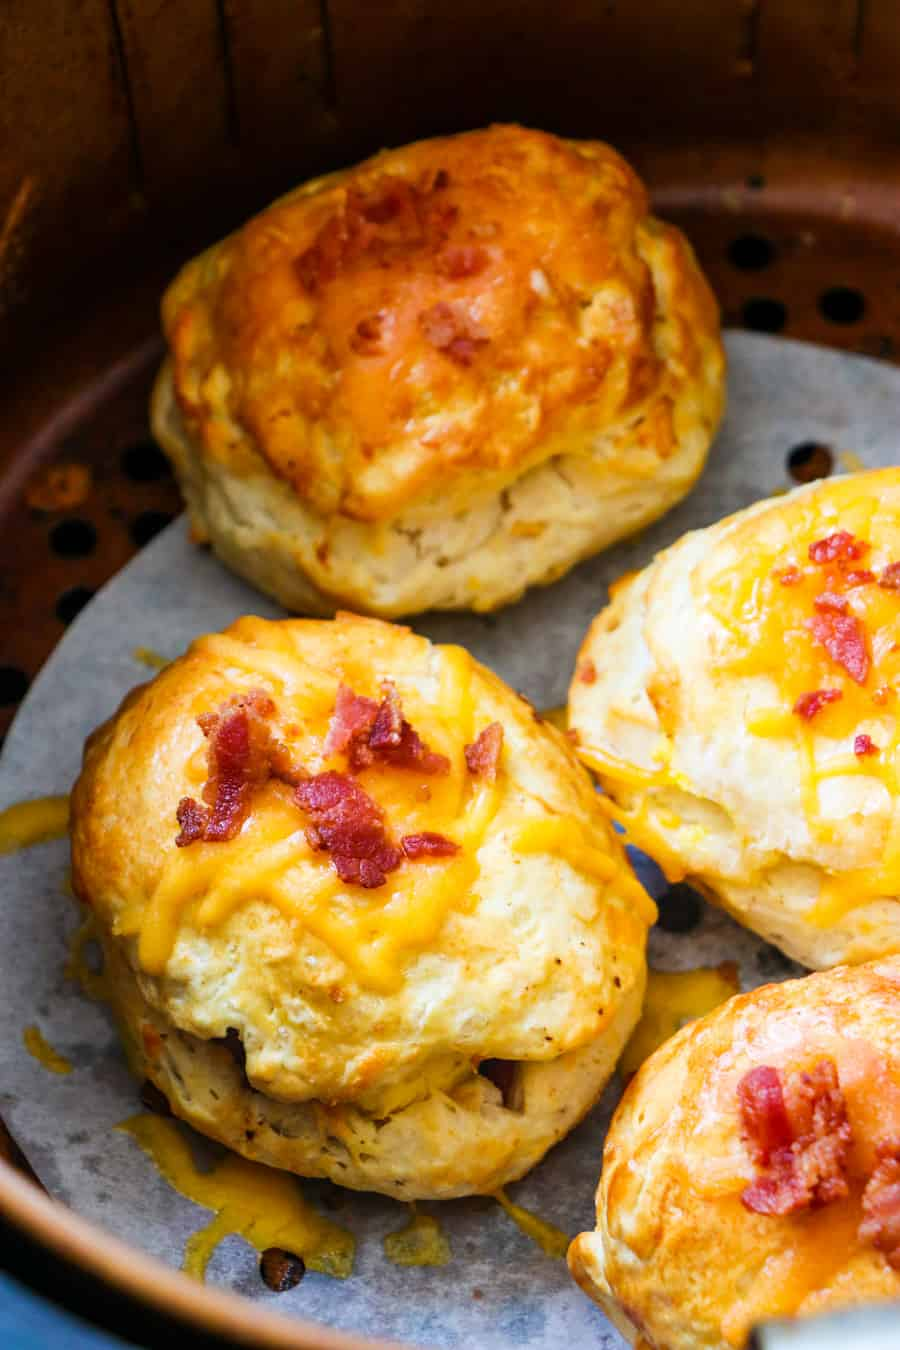 Cooked Stuffed Biscuits in air fryer.